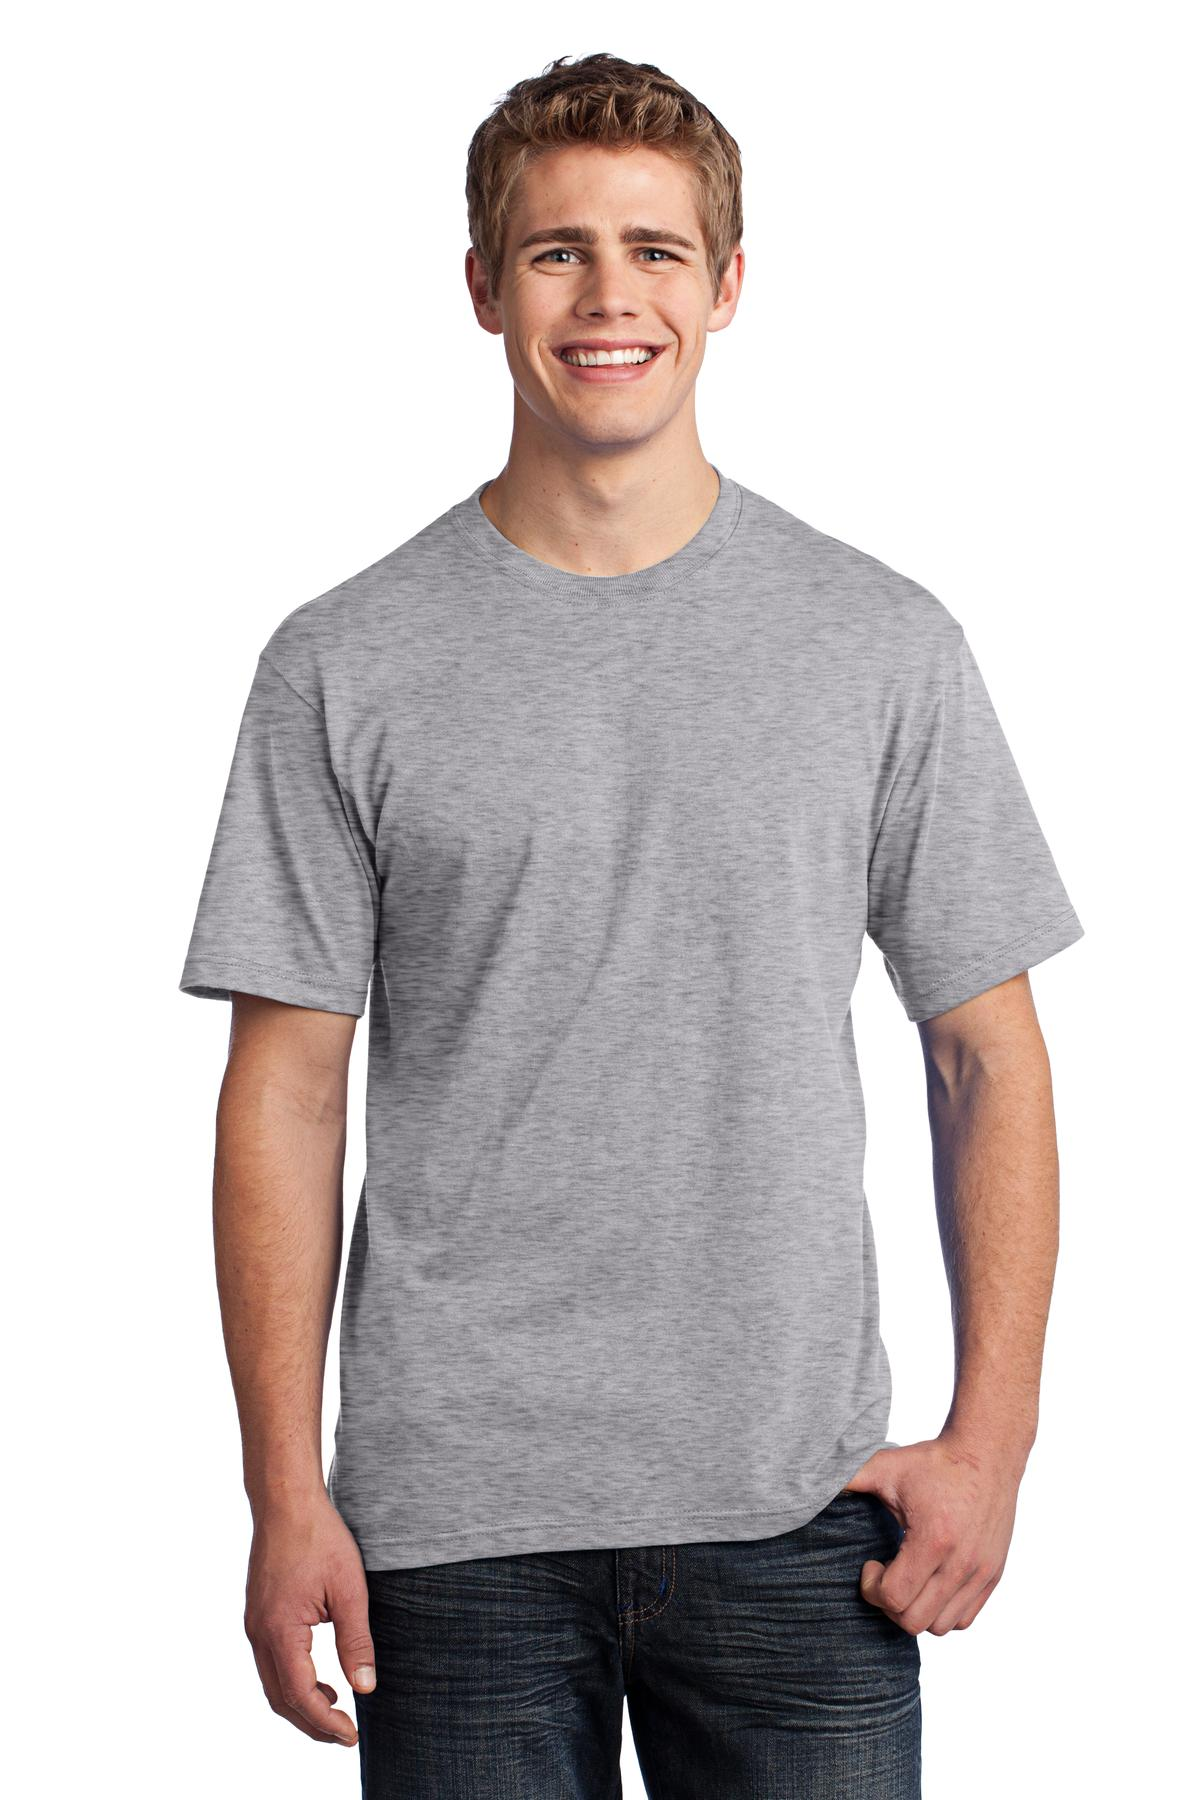 Port & Company - All-American Tee. USA100